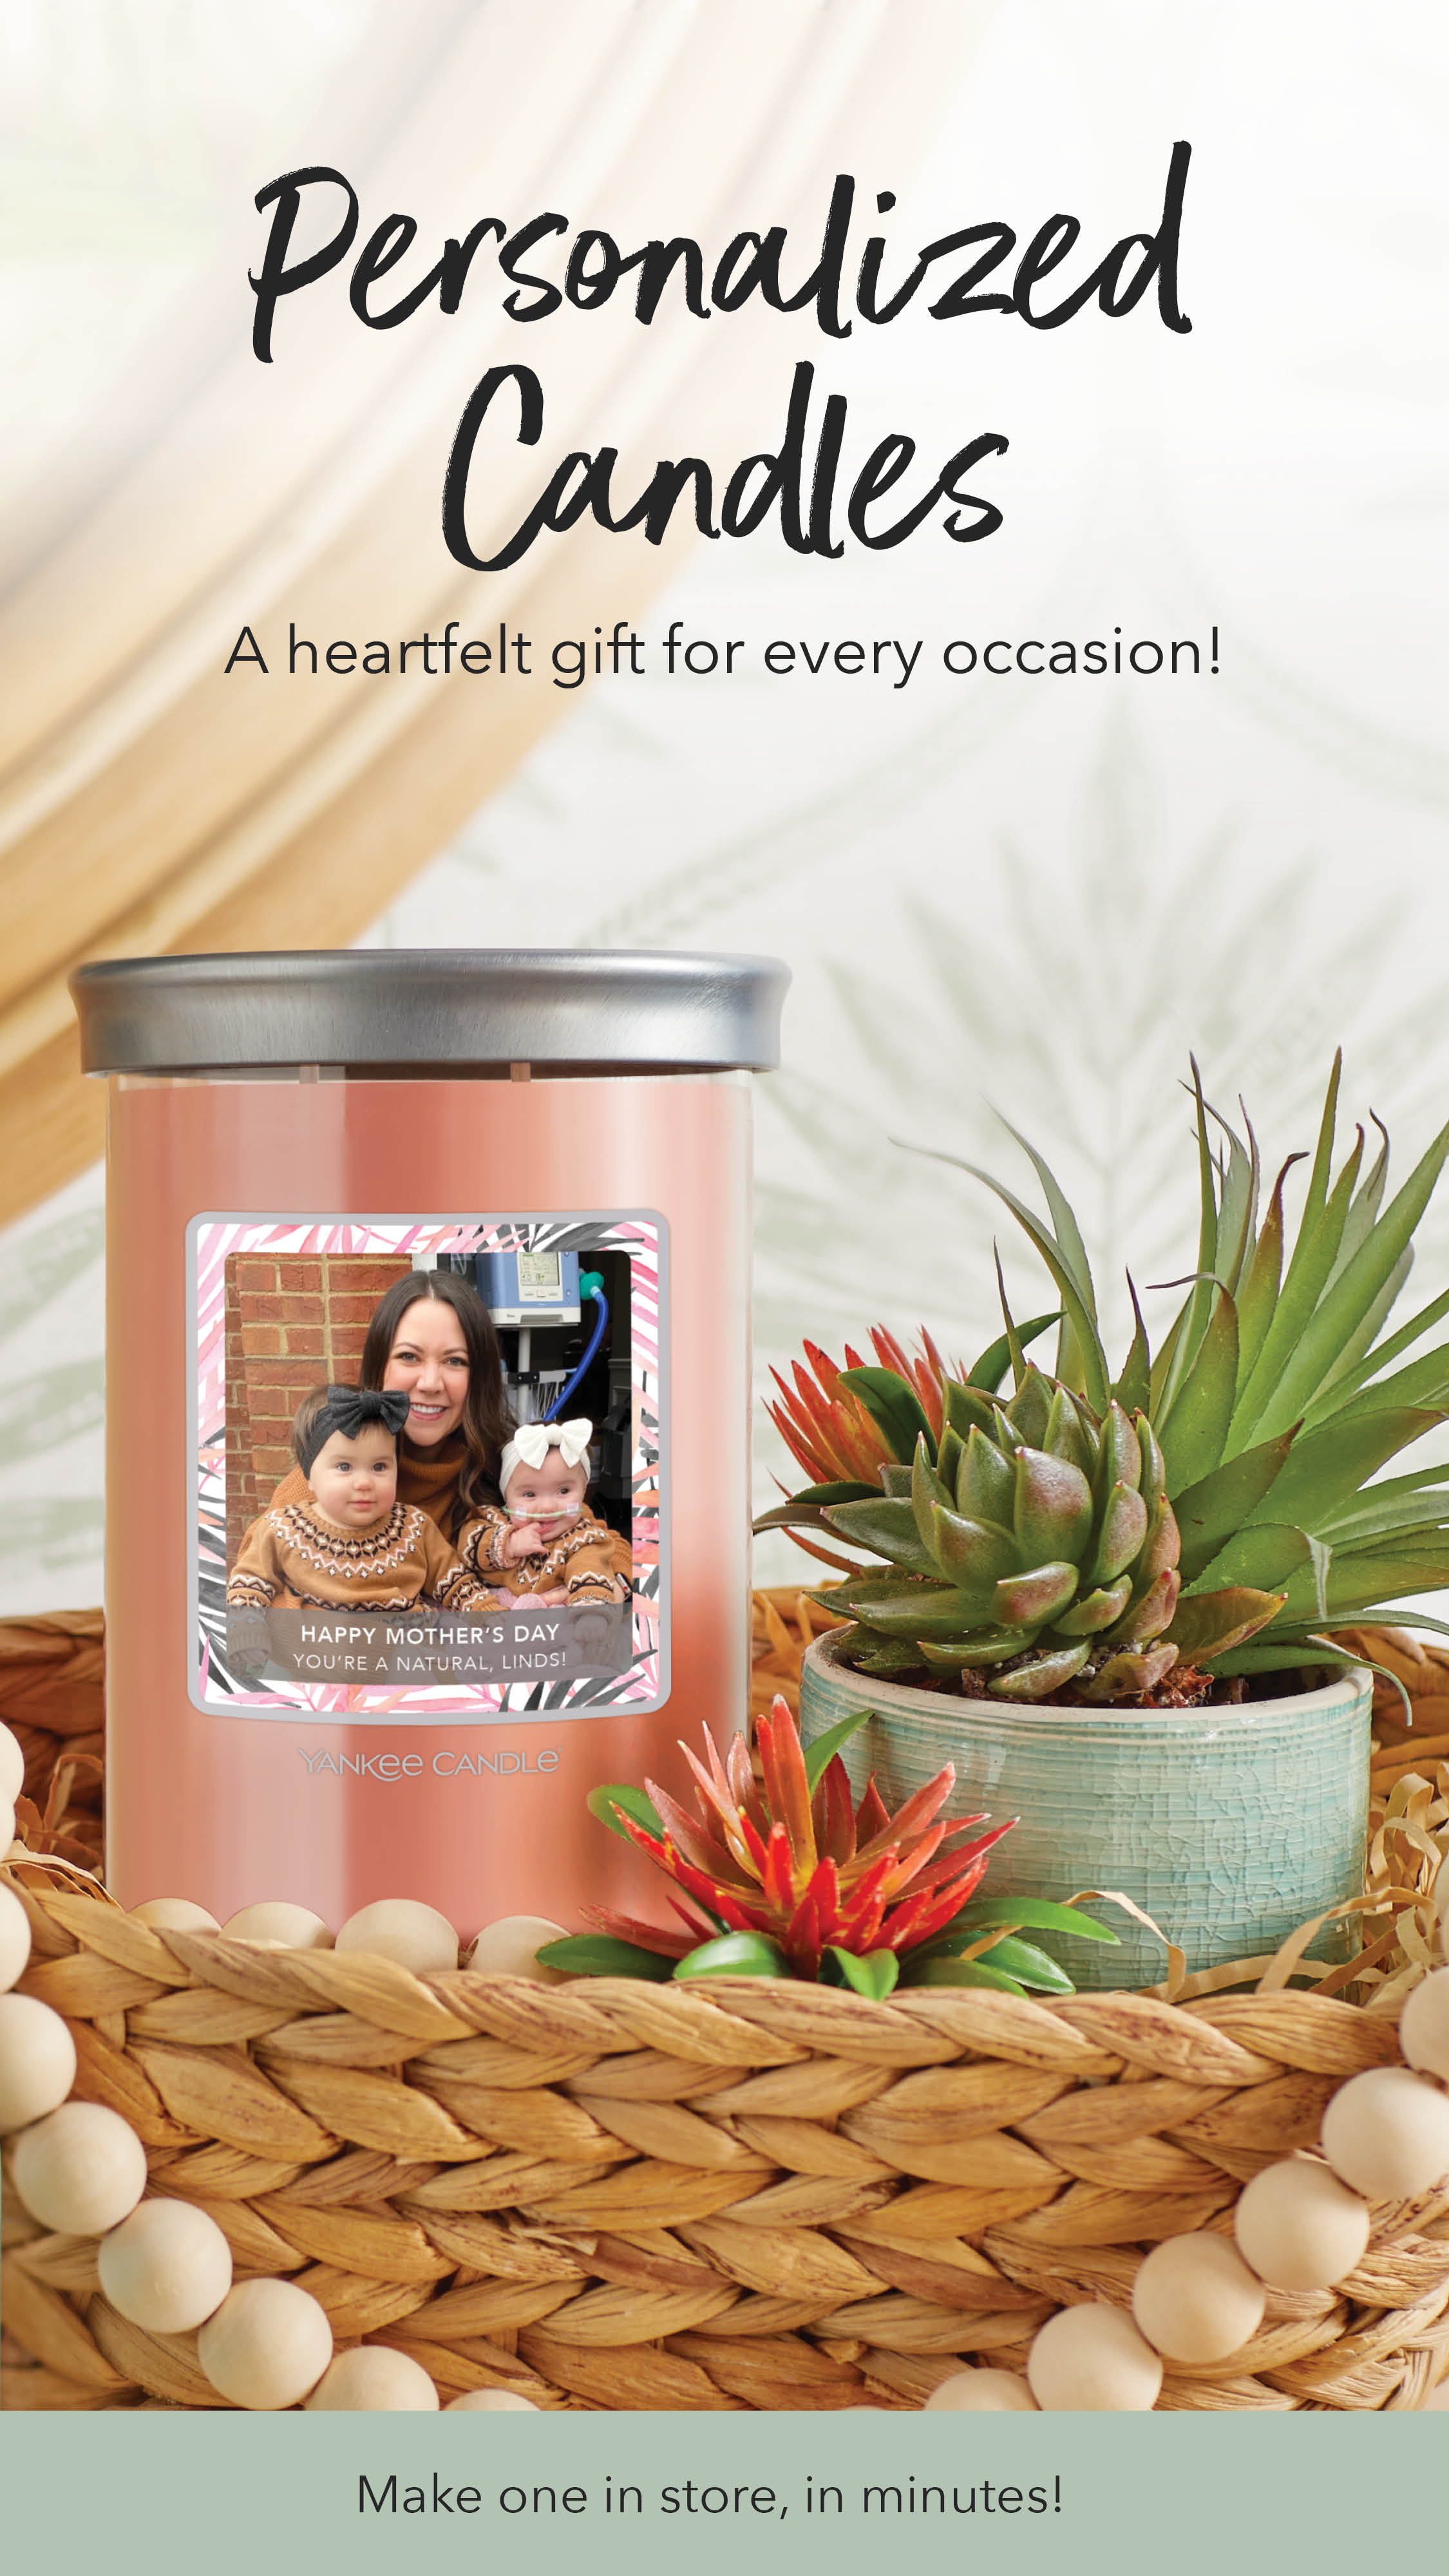 Yankee Candle - Personalized Candle - Perfect gift for mom! from Yankee Candle